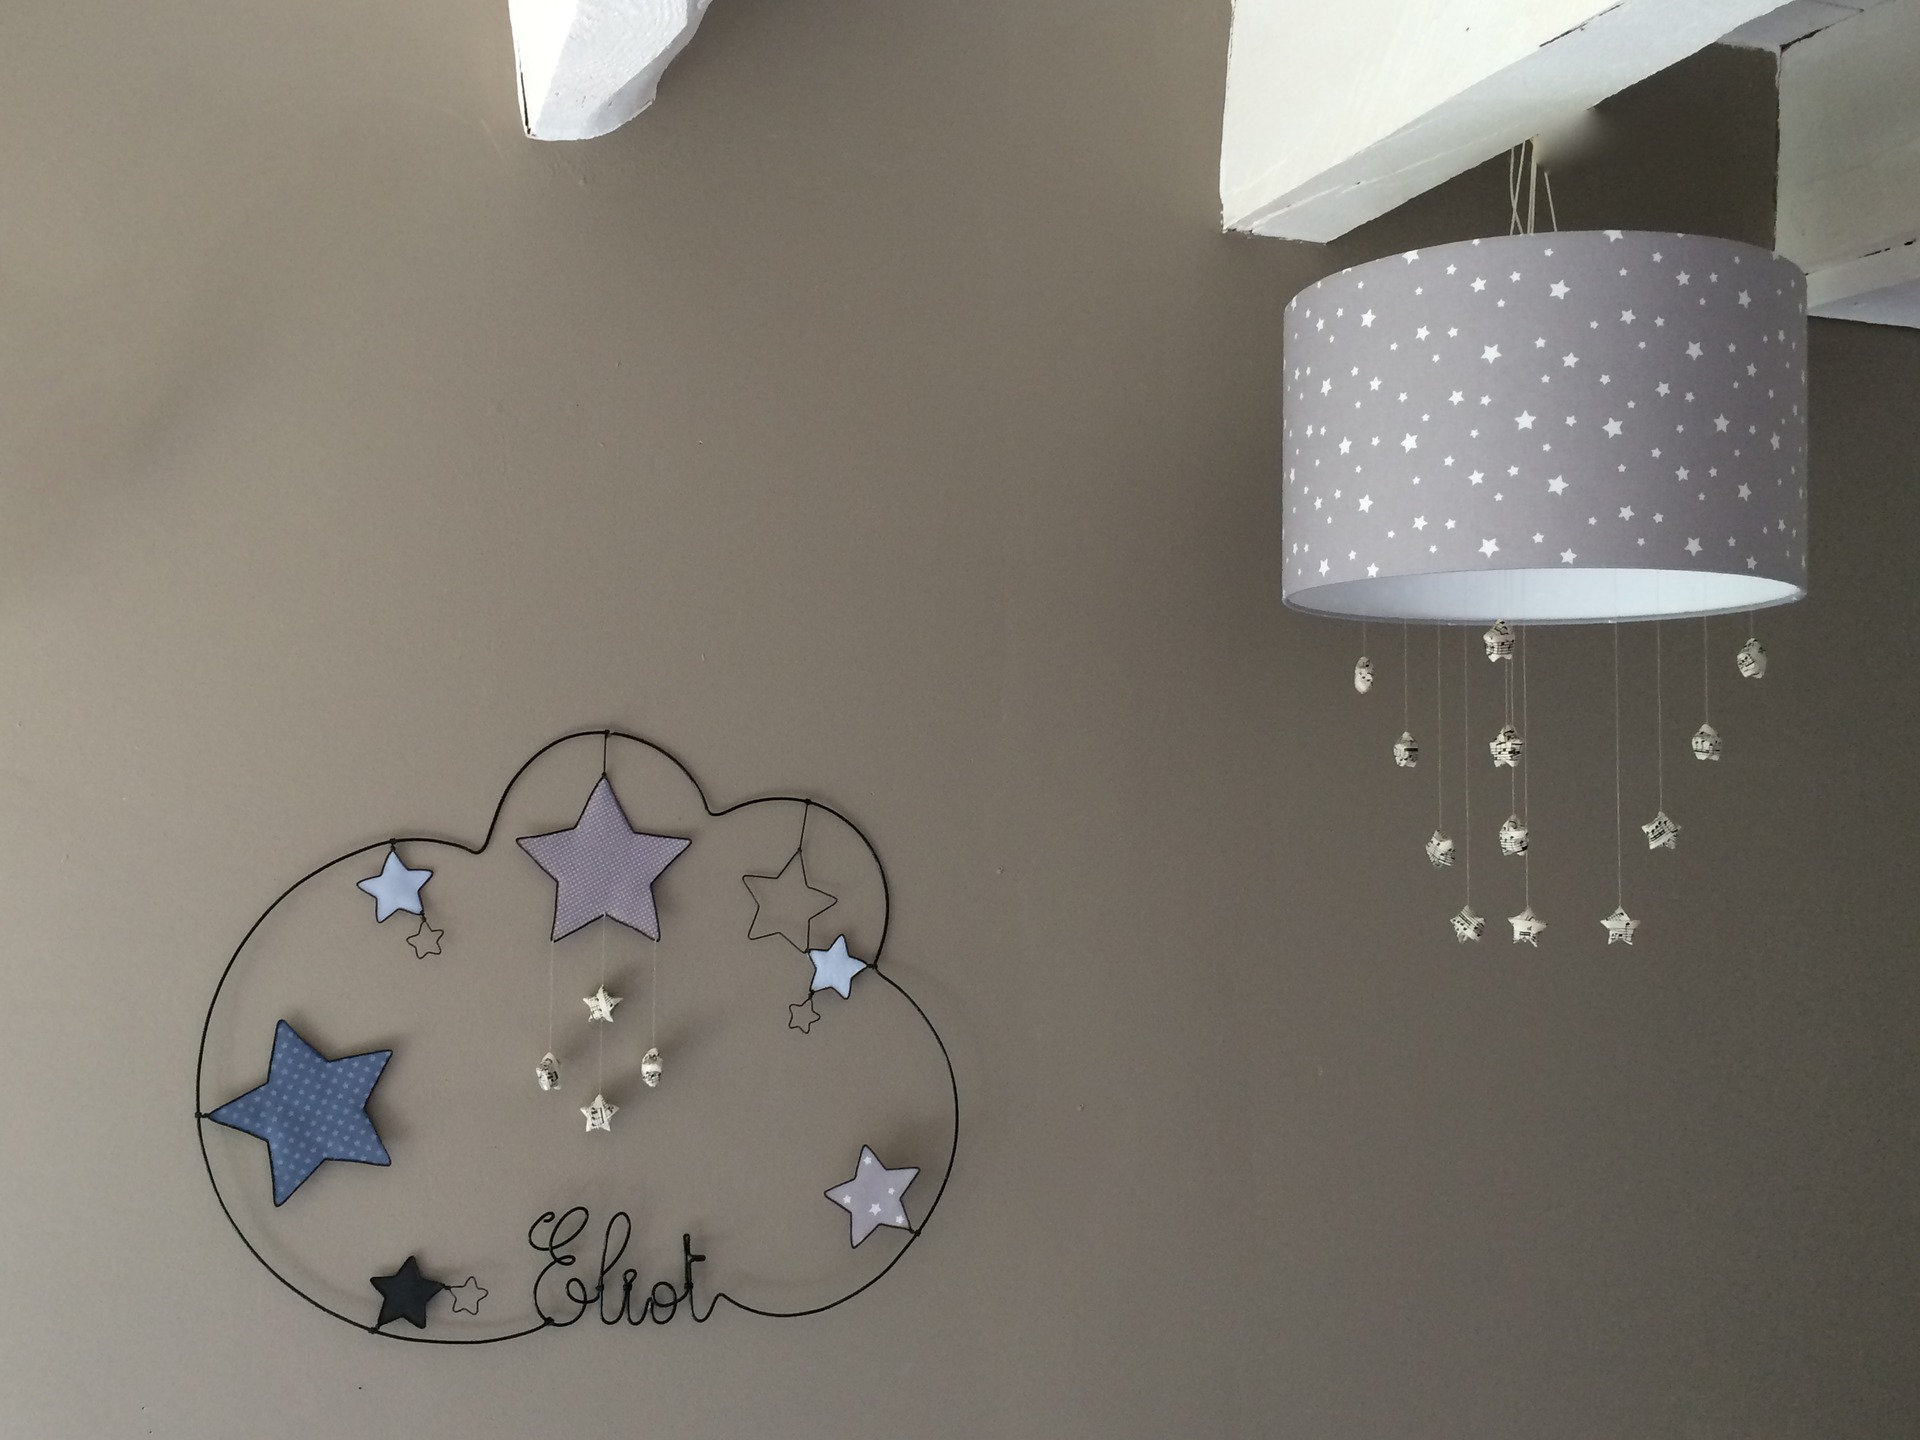 Lampe Suspension Enfant Abat Jour Suspension Enfant Ouistitipop